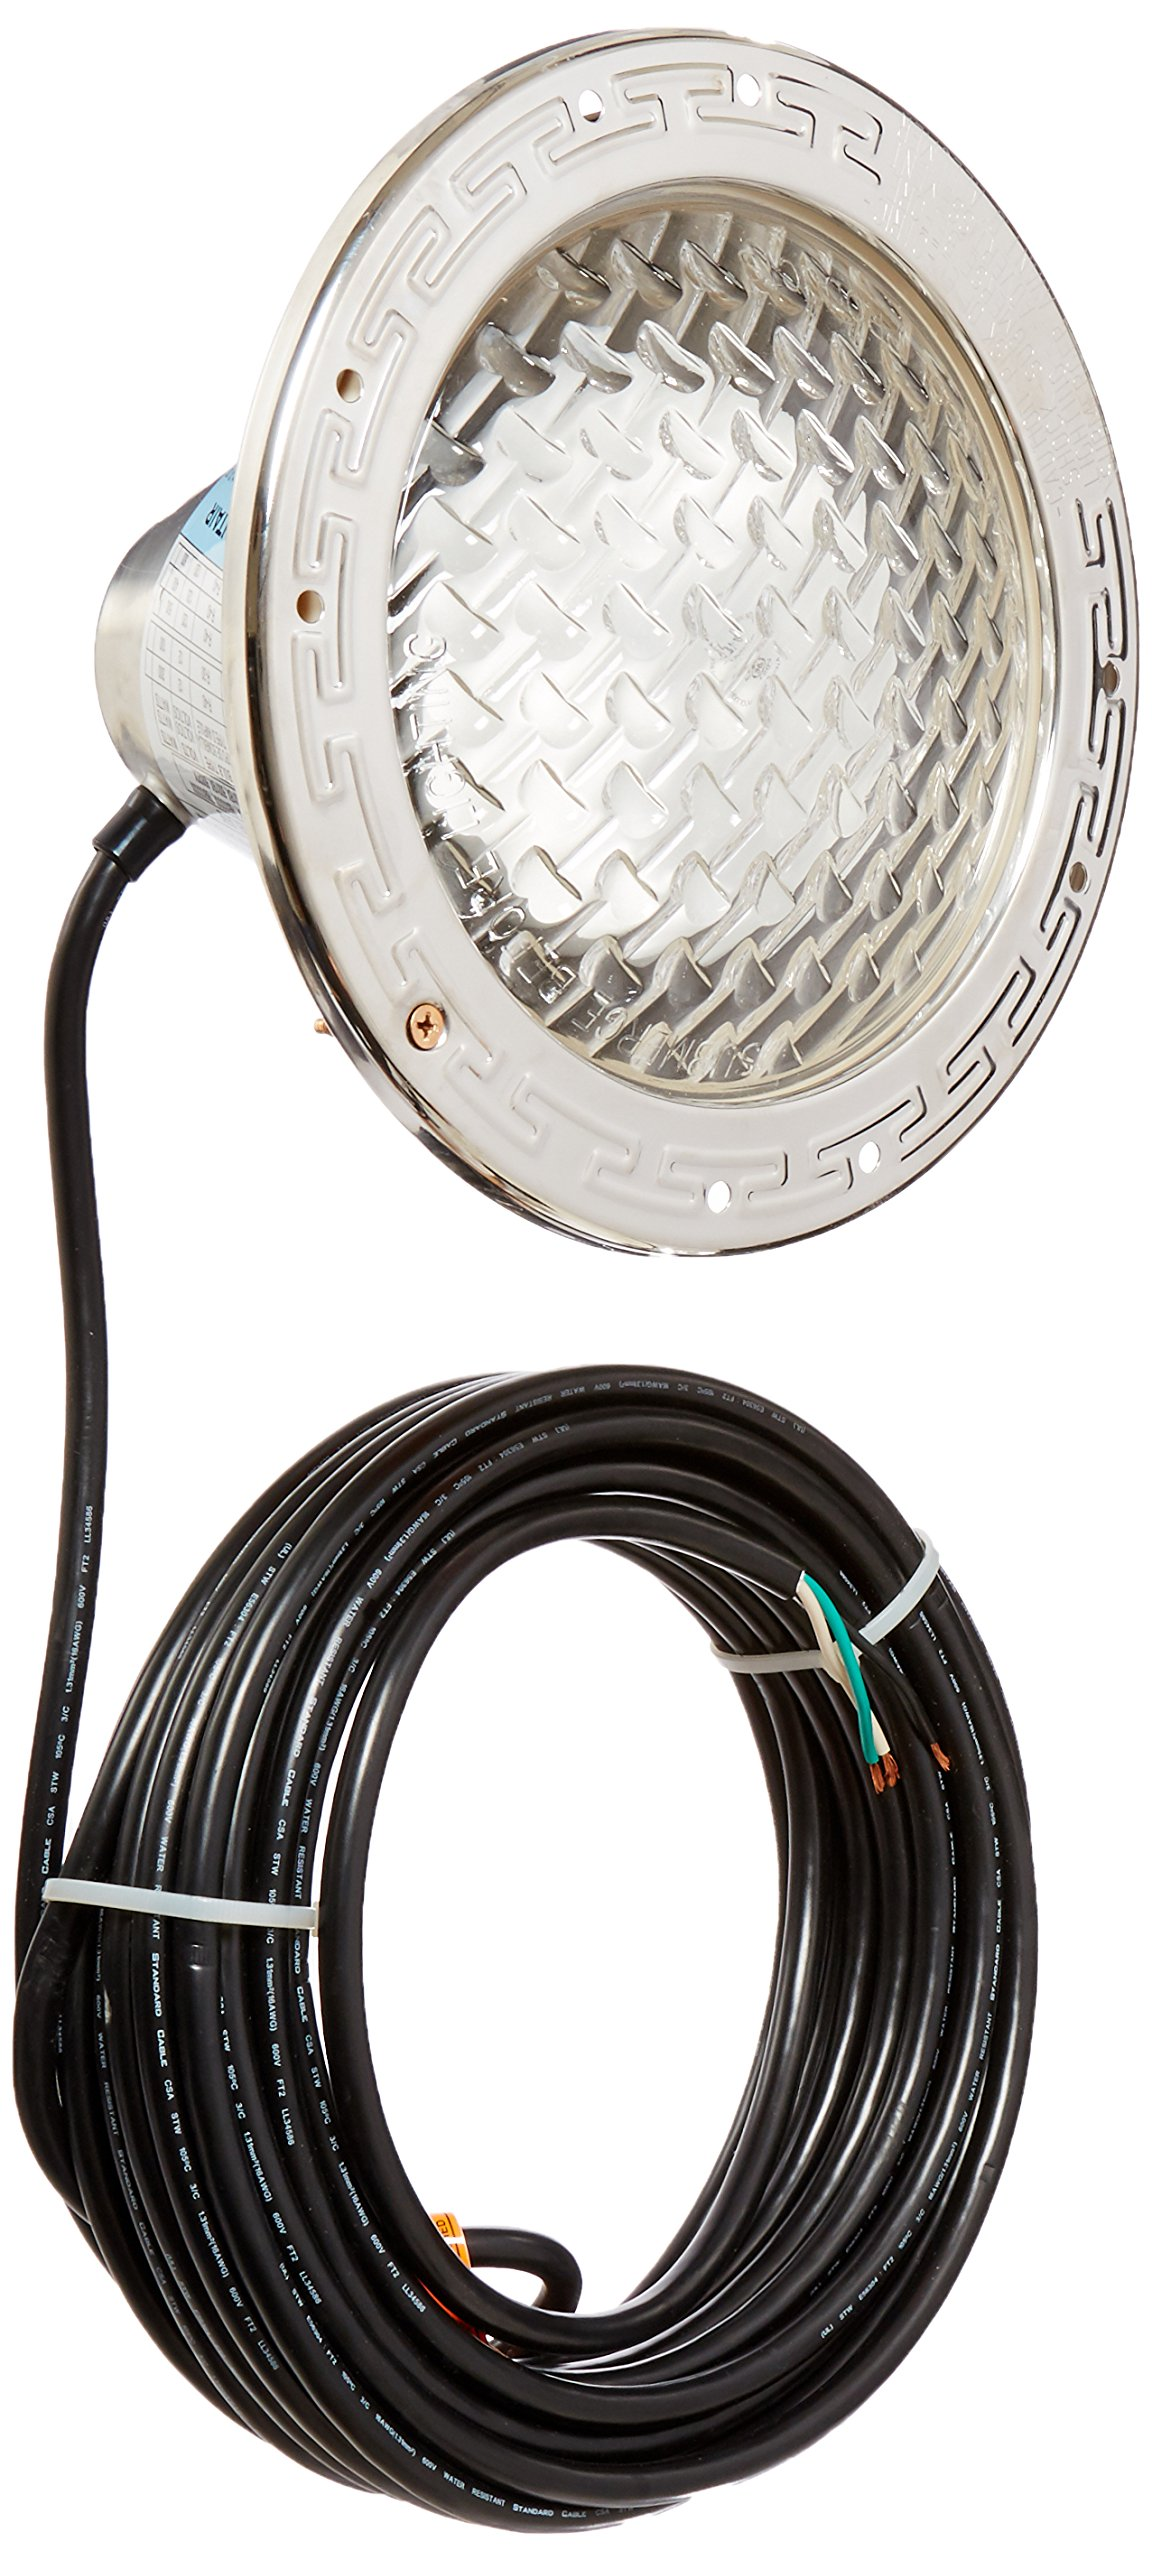 Pentair 78458100 Amerlite Underwater Incandescent Pool Light with Stainless Steel Face Ring, 120 Volt, 50 Foot Cord, 500 Watt by Pentair